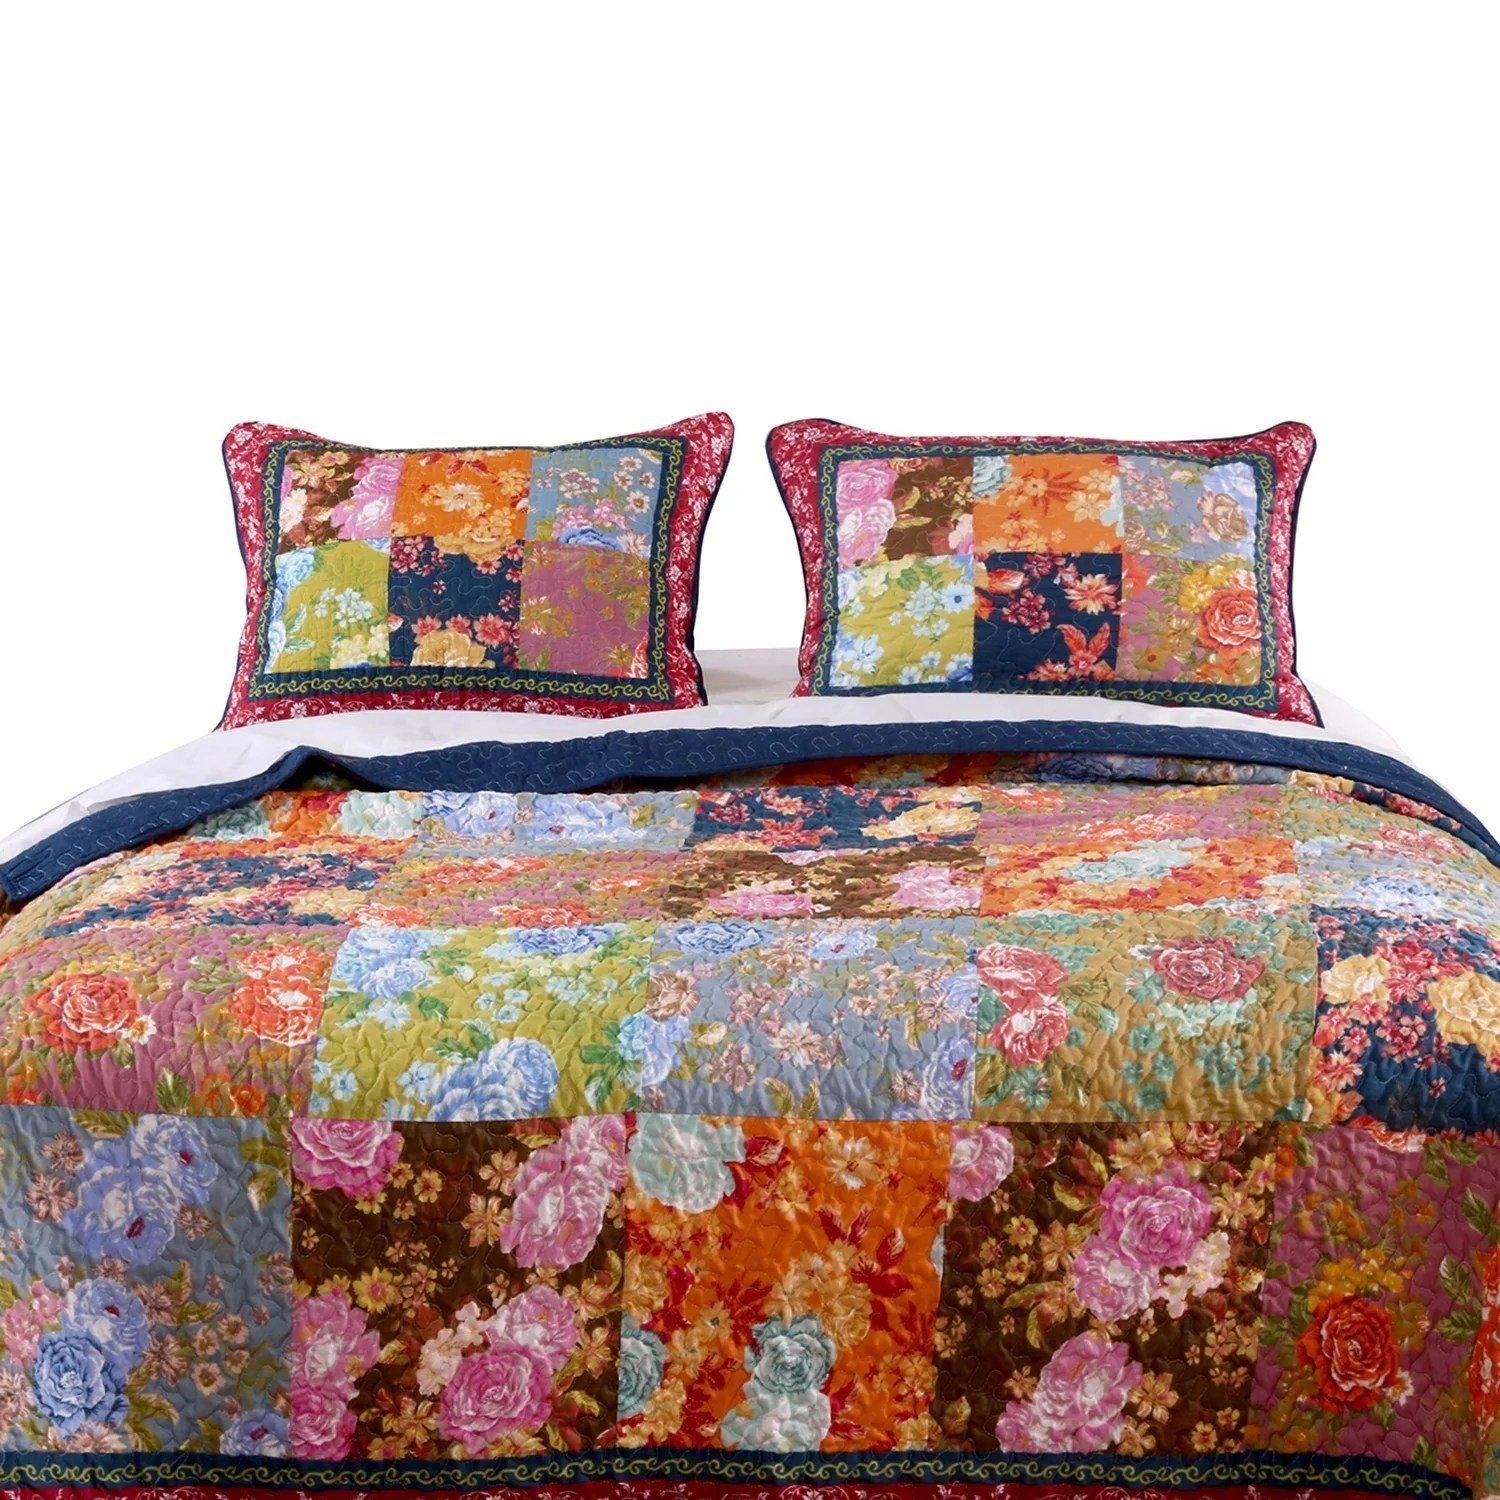 king quilted pillow shams online